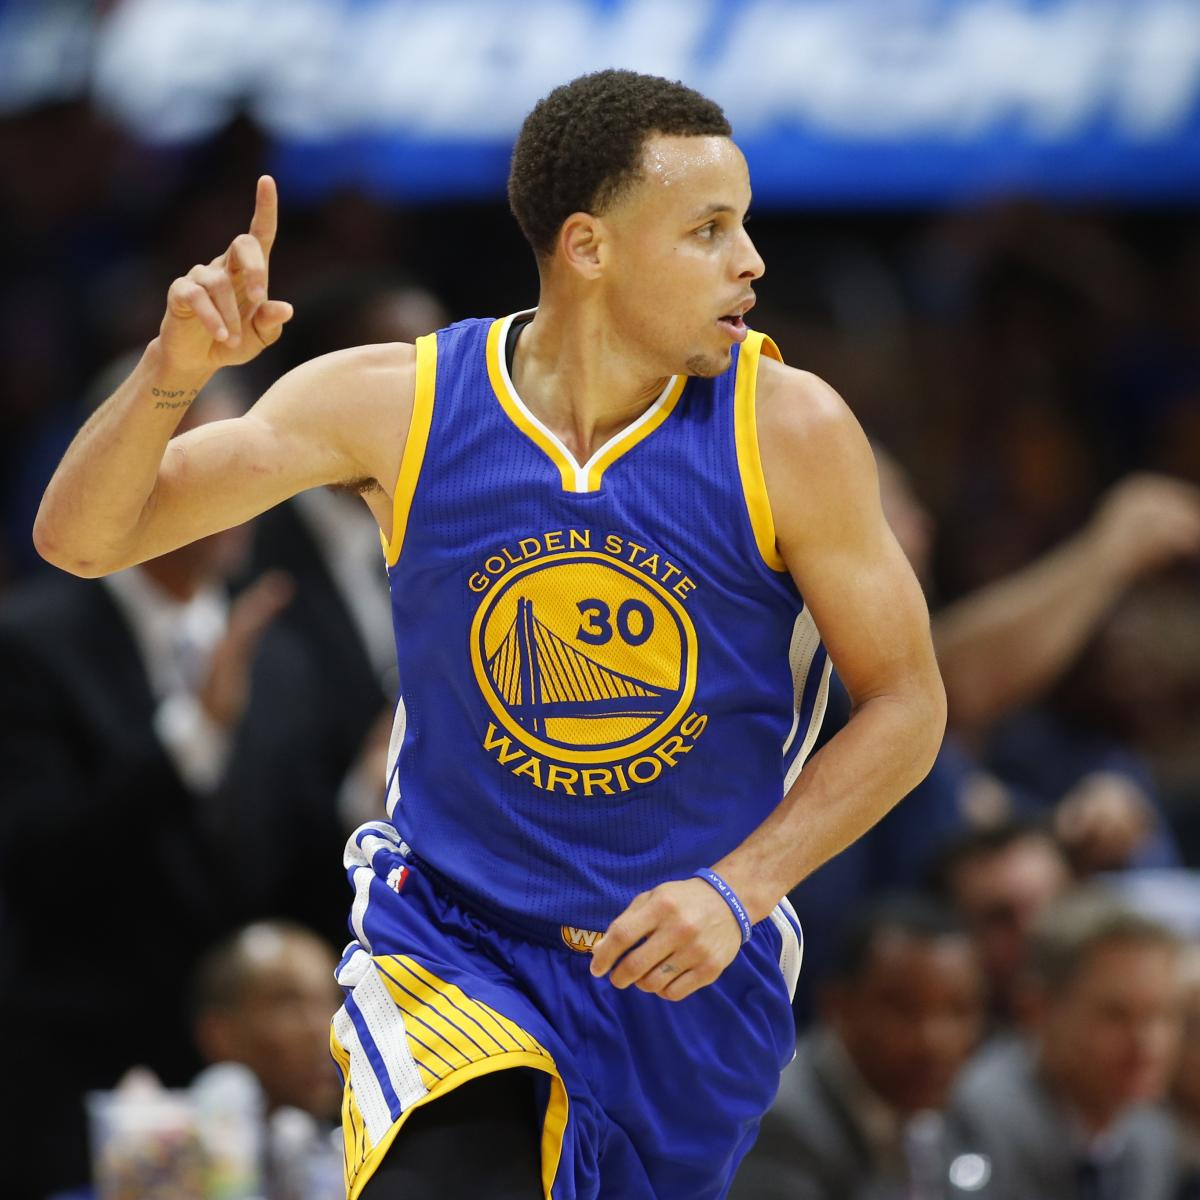 Warriors Come Out To Play Bleacher Report: Golden State Warriors Playoff Schedule 2015: TV Info